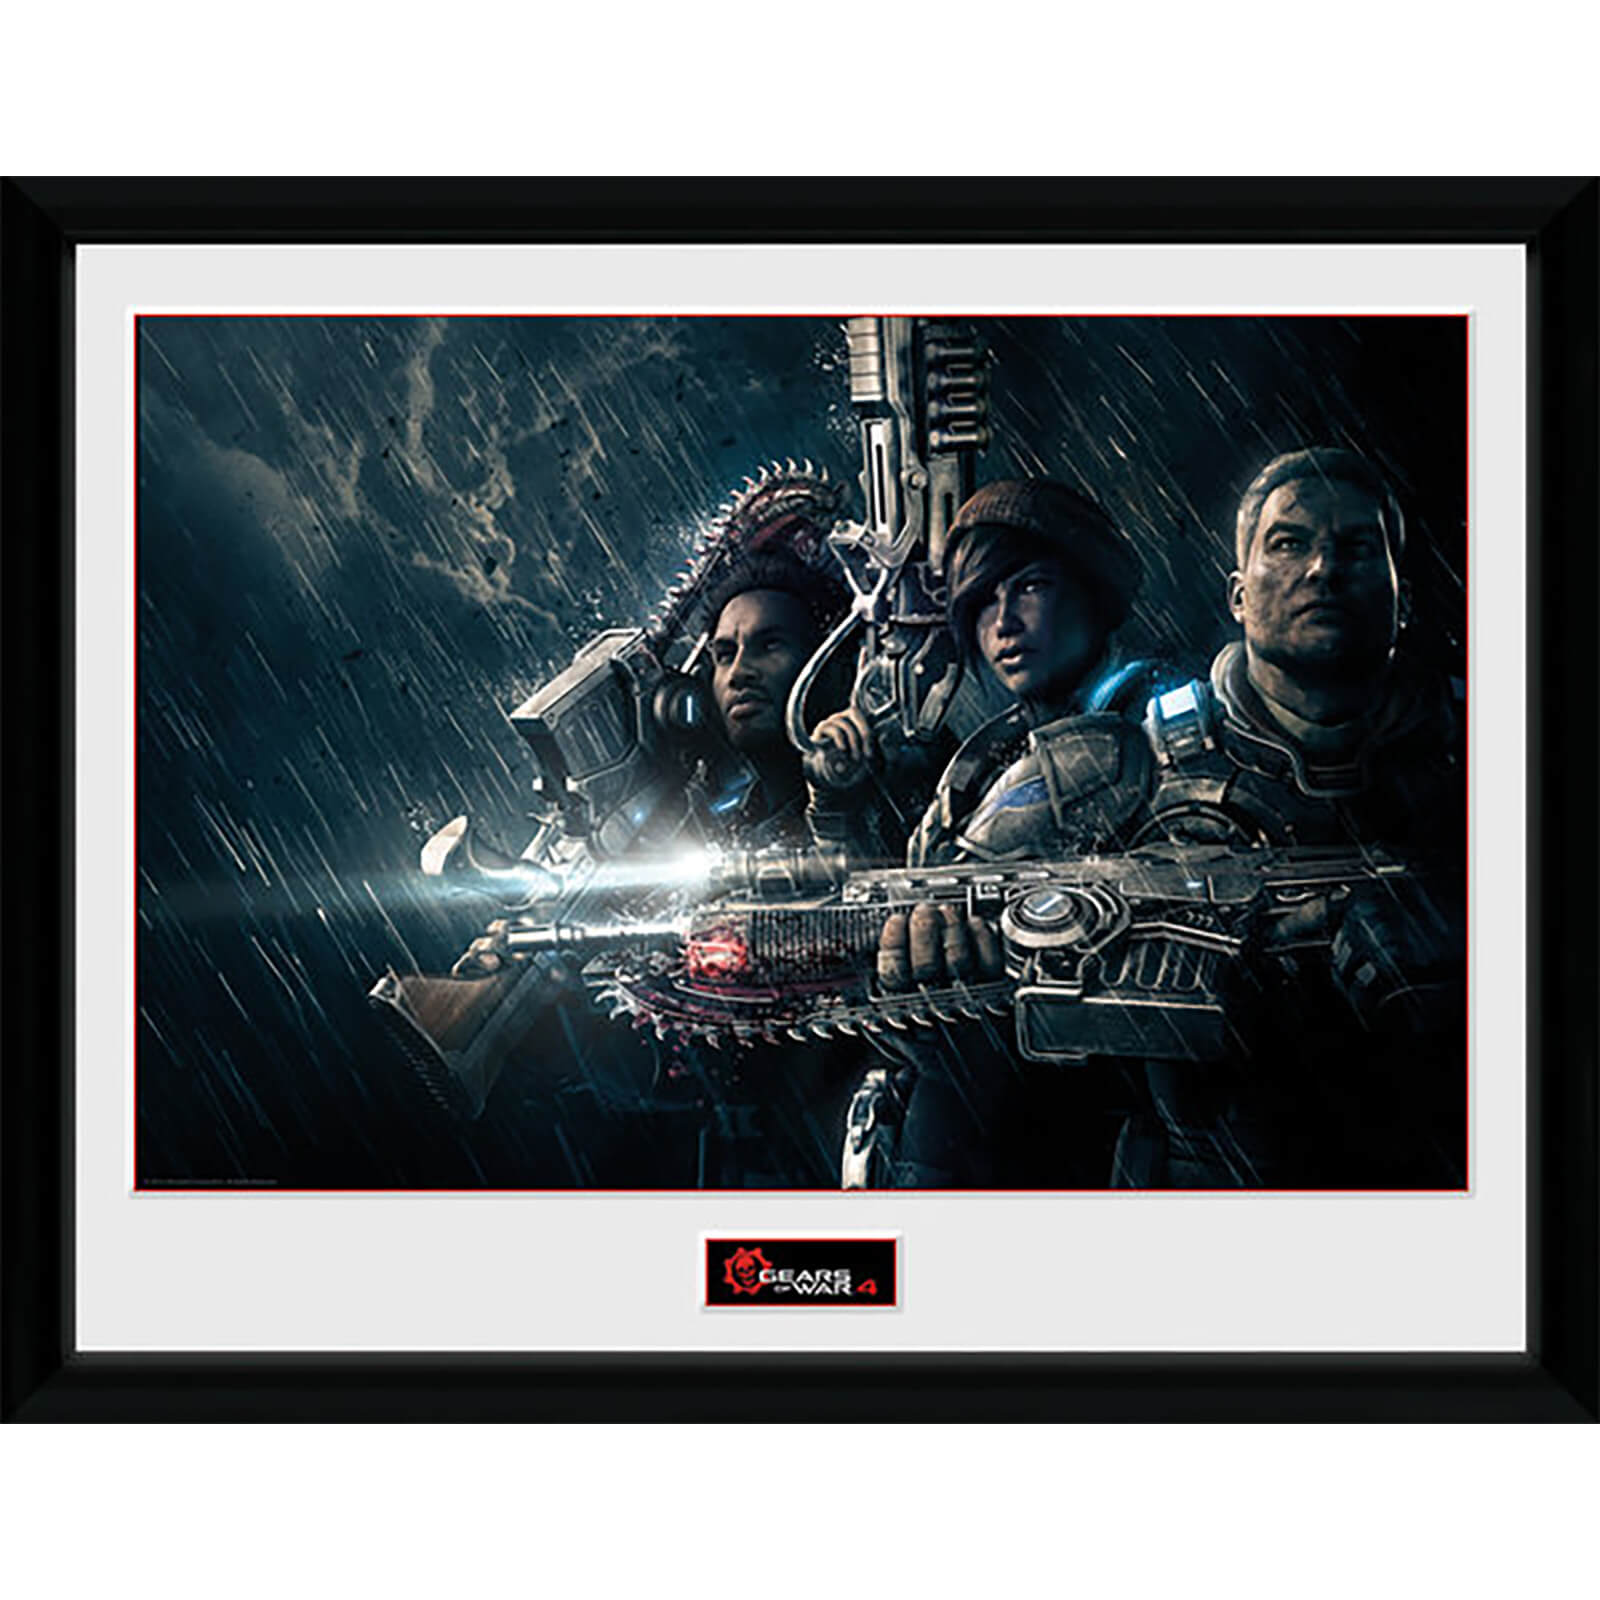 Gears of War 4 Landscape - 16 x 12 Inches Framed Photograph